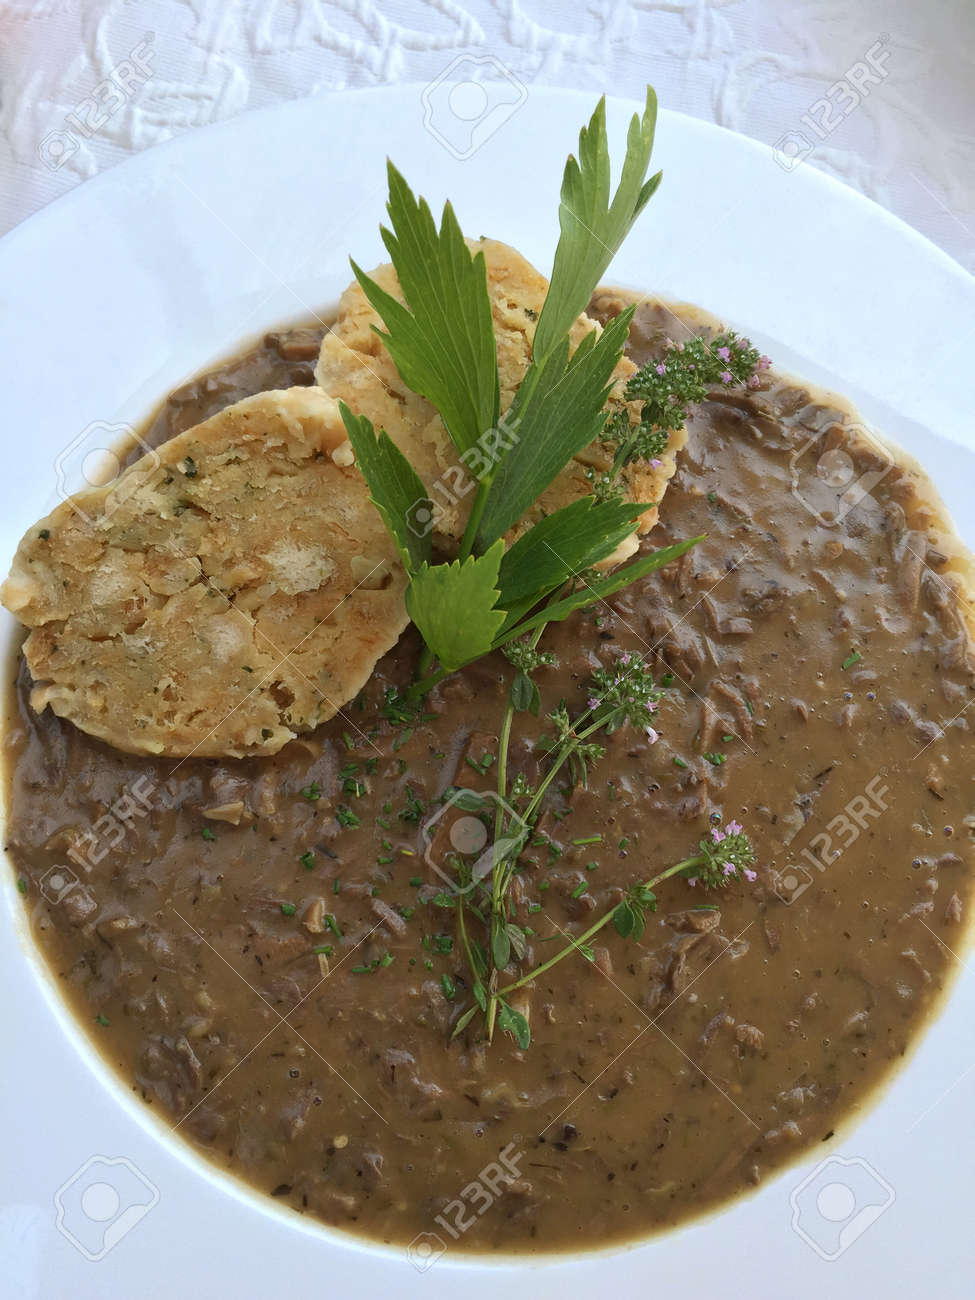 Old styled Viennese soup called Beuschel, a ragout made with veal lungs and heart, serve with bread dumplings in Austria Standard-Bild - 64922972